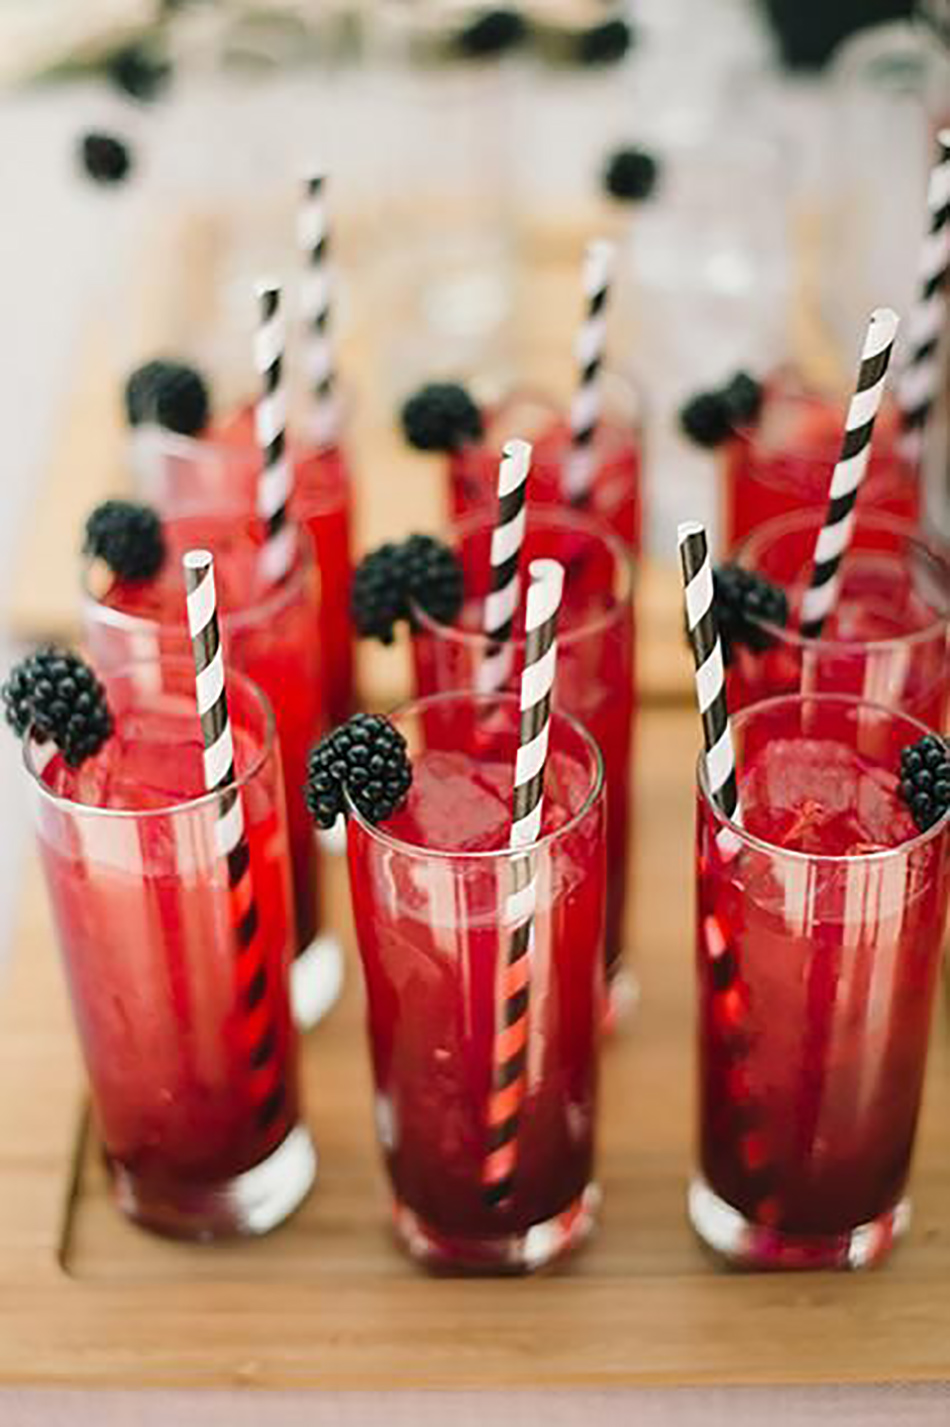 The best ideas for a Valentine's themed wedding